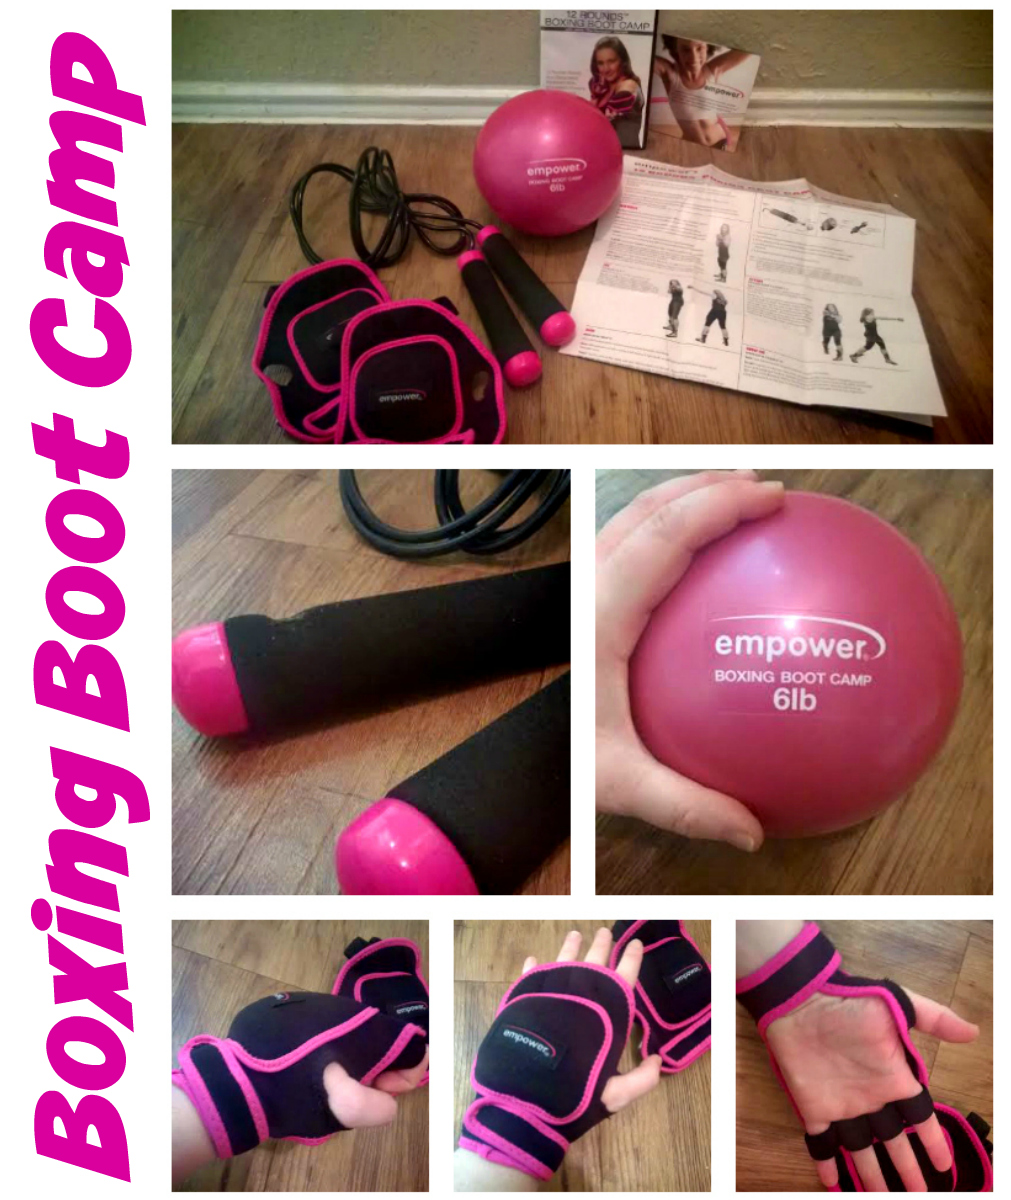 Boxing Boot Camp Workout from Empower Fitness